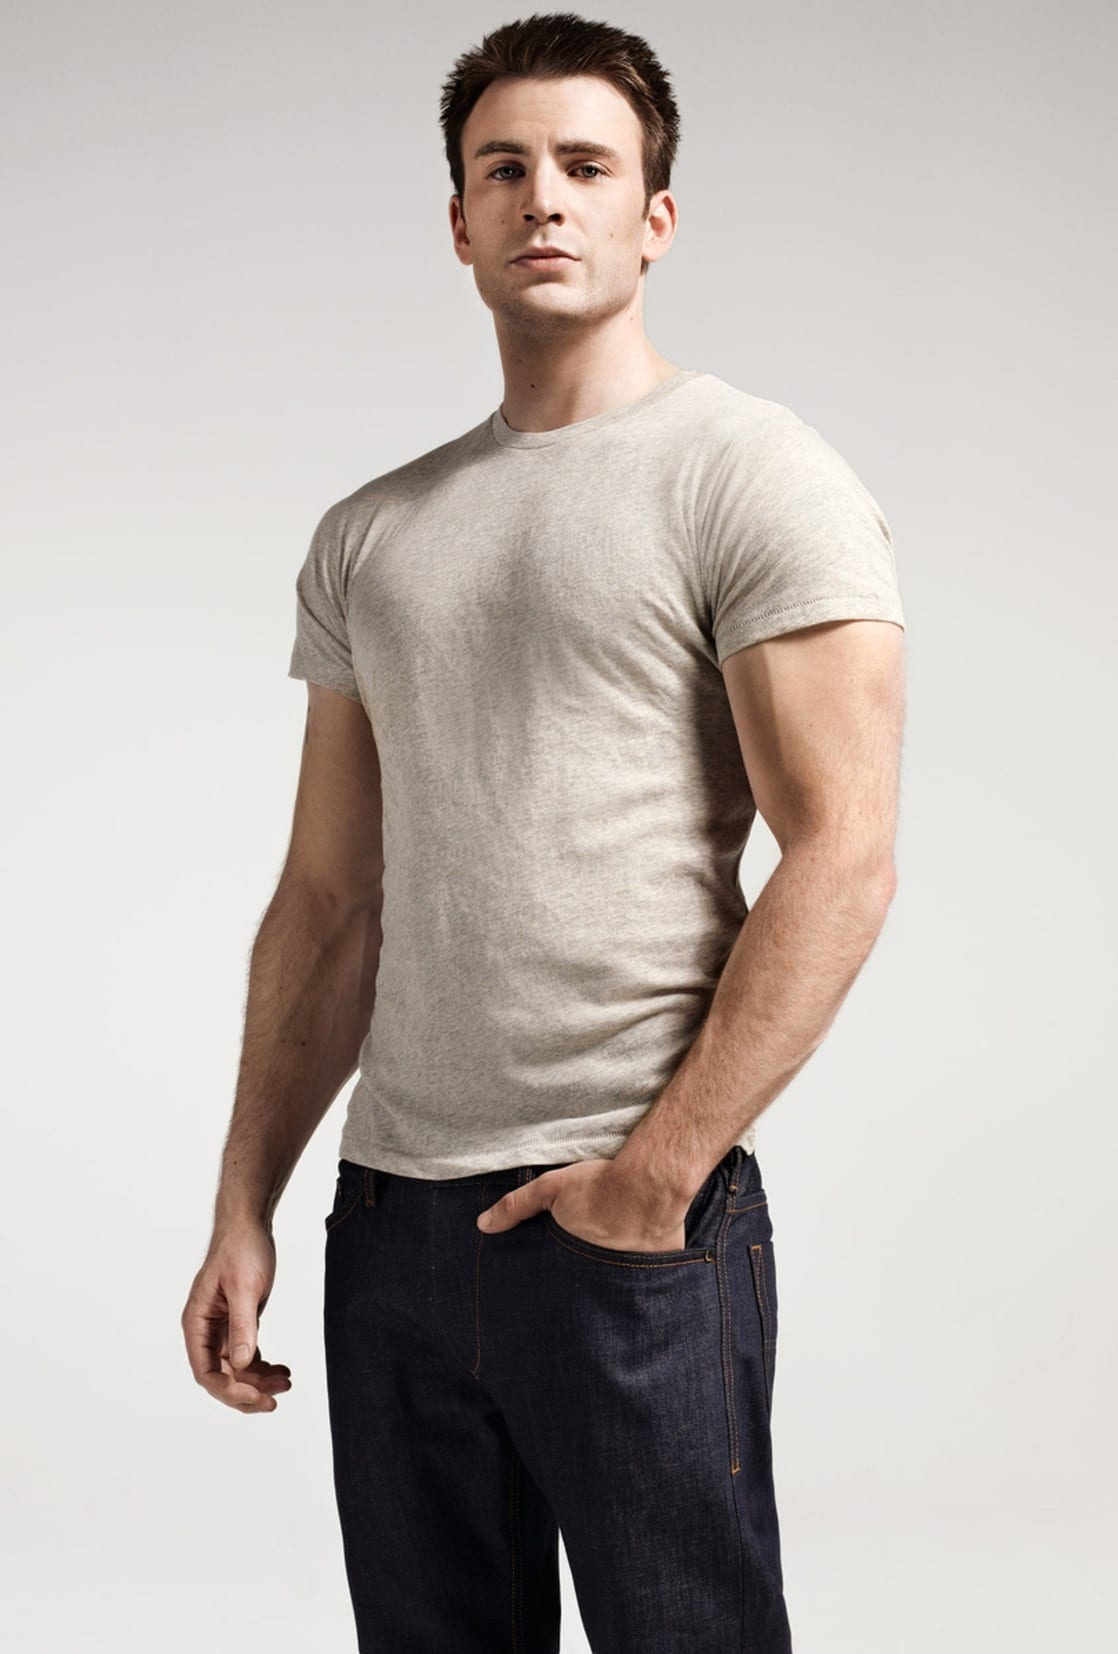 Picture of Chris Evans